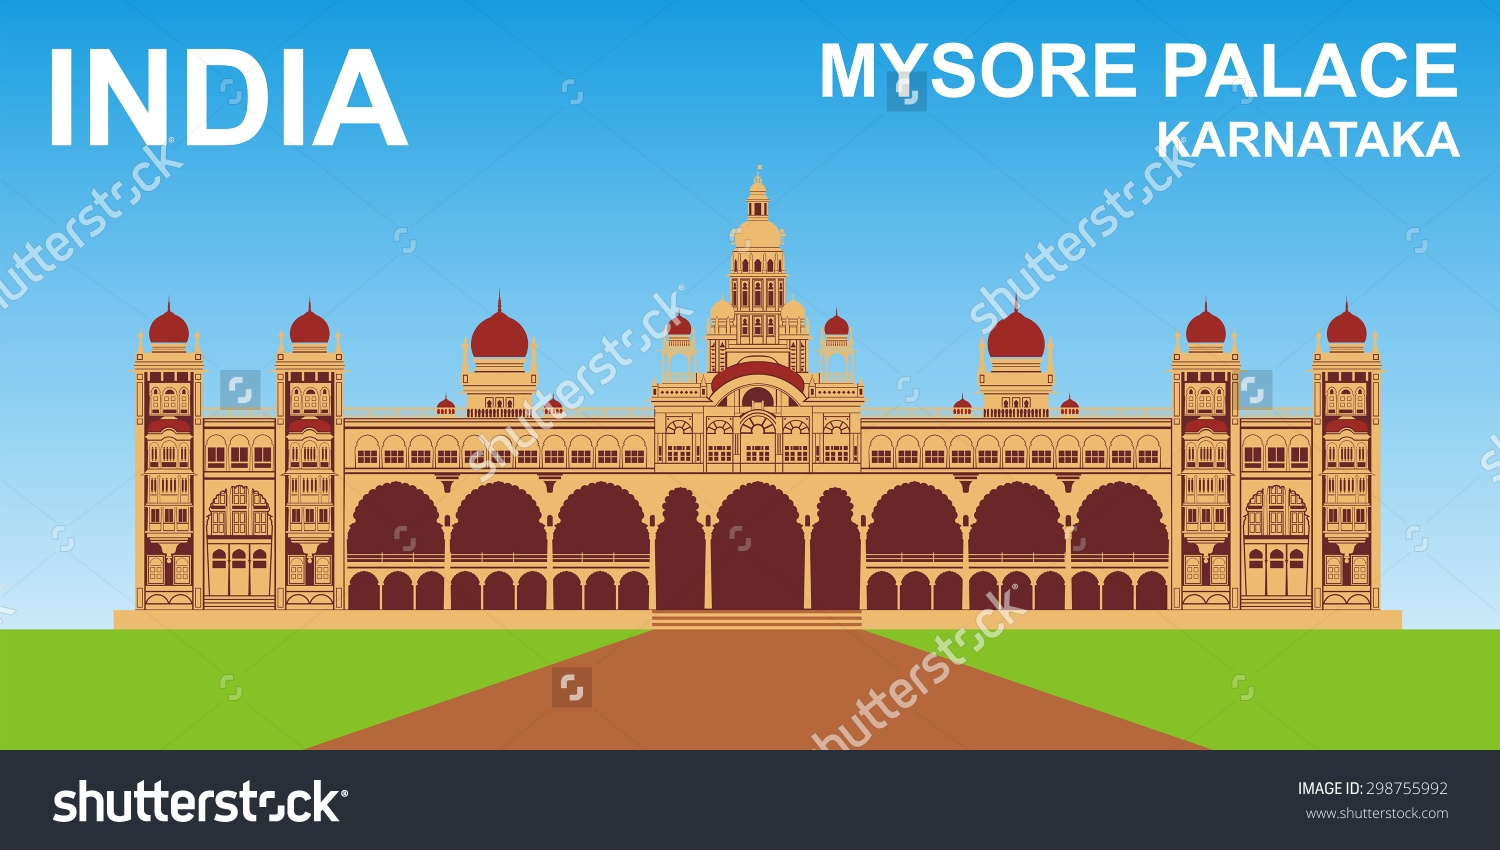 Mysore Palace Karnataka India Stock Vector 298755992.